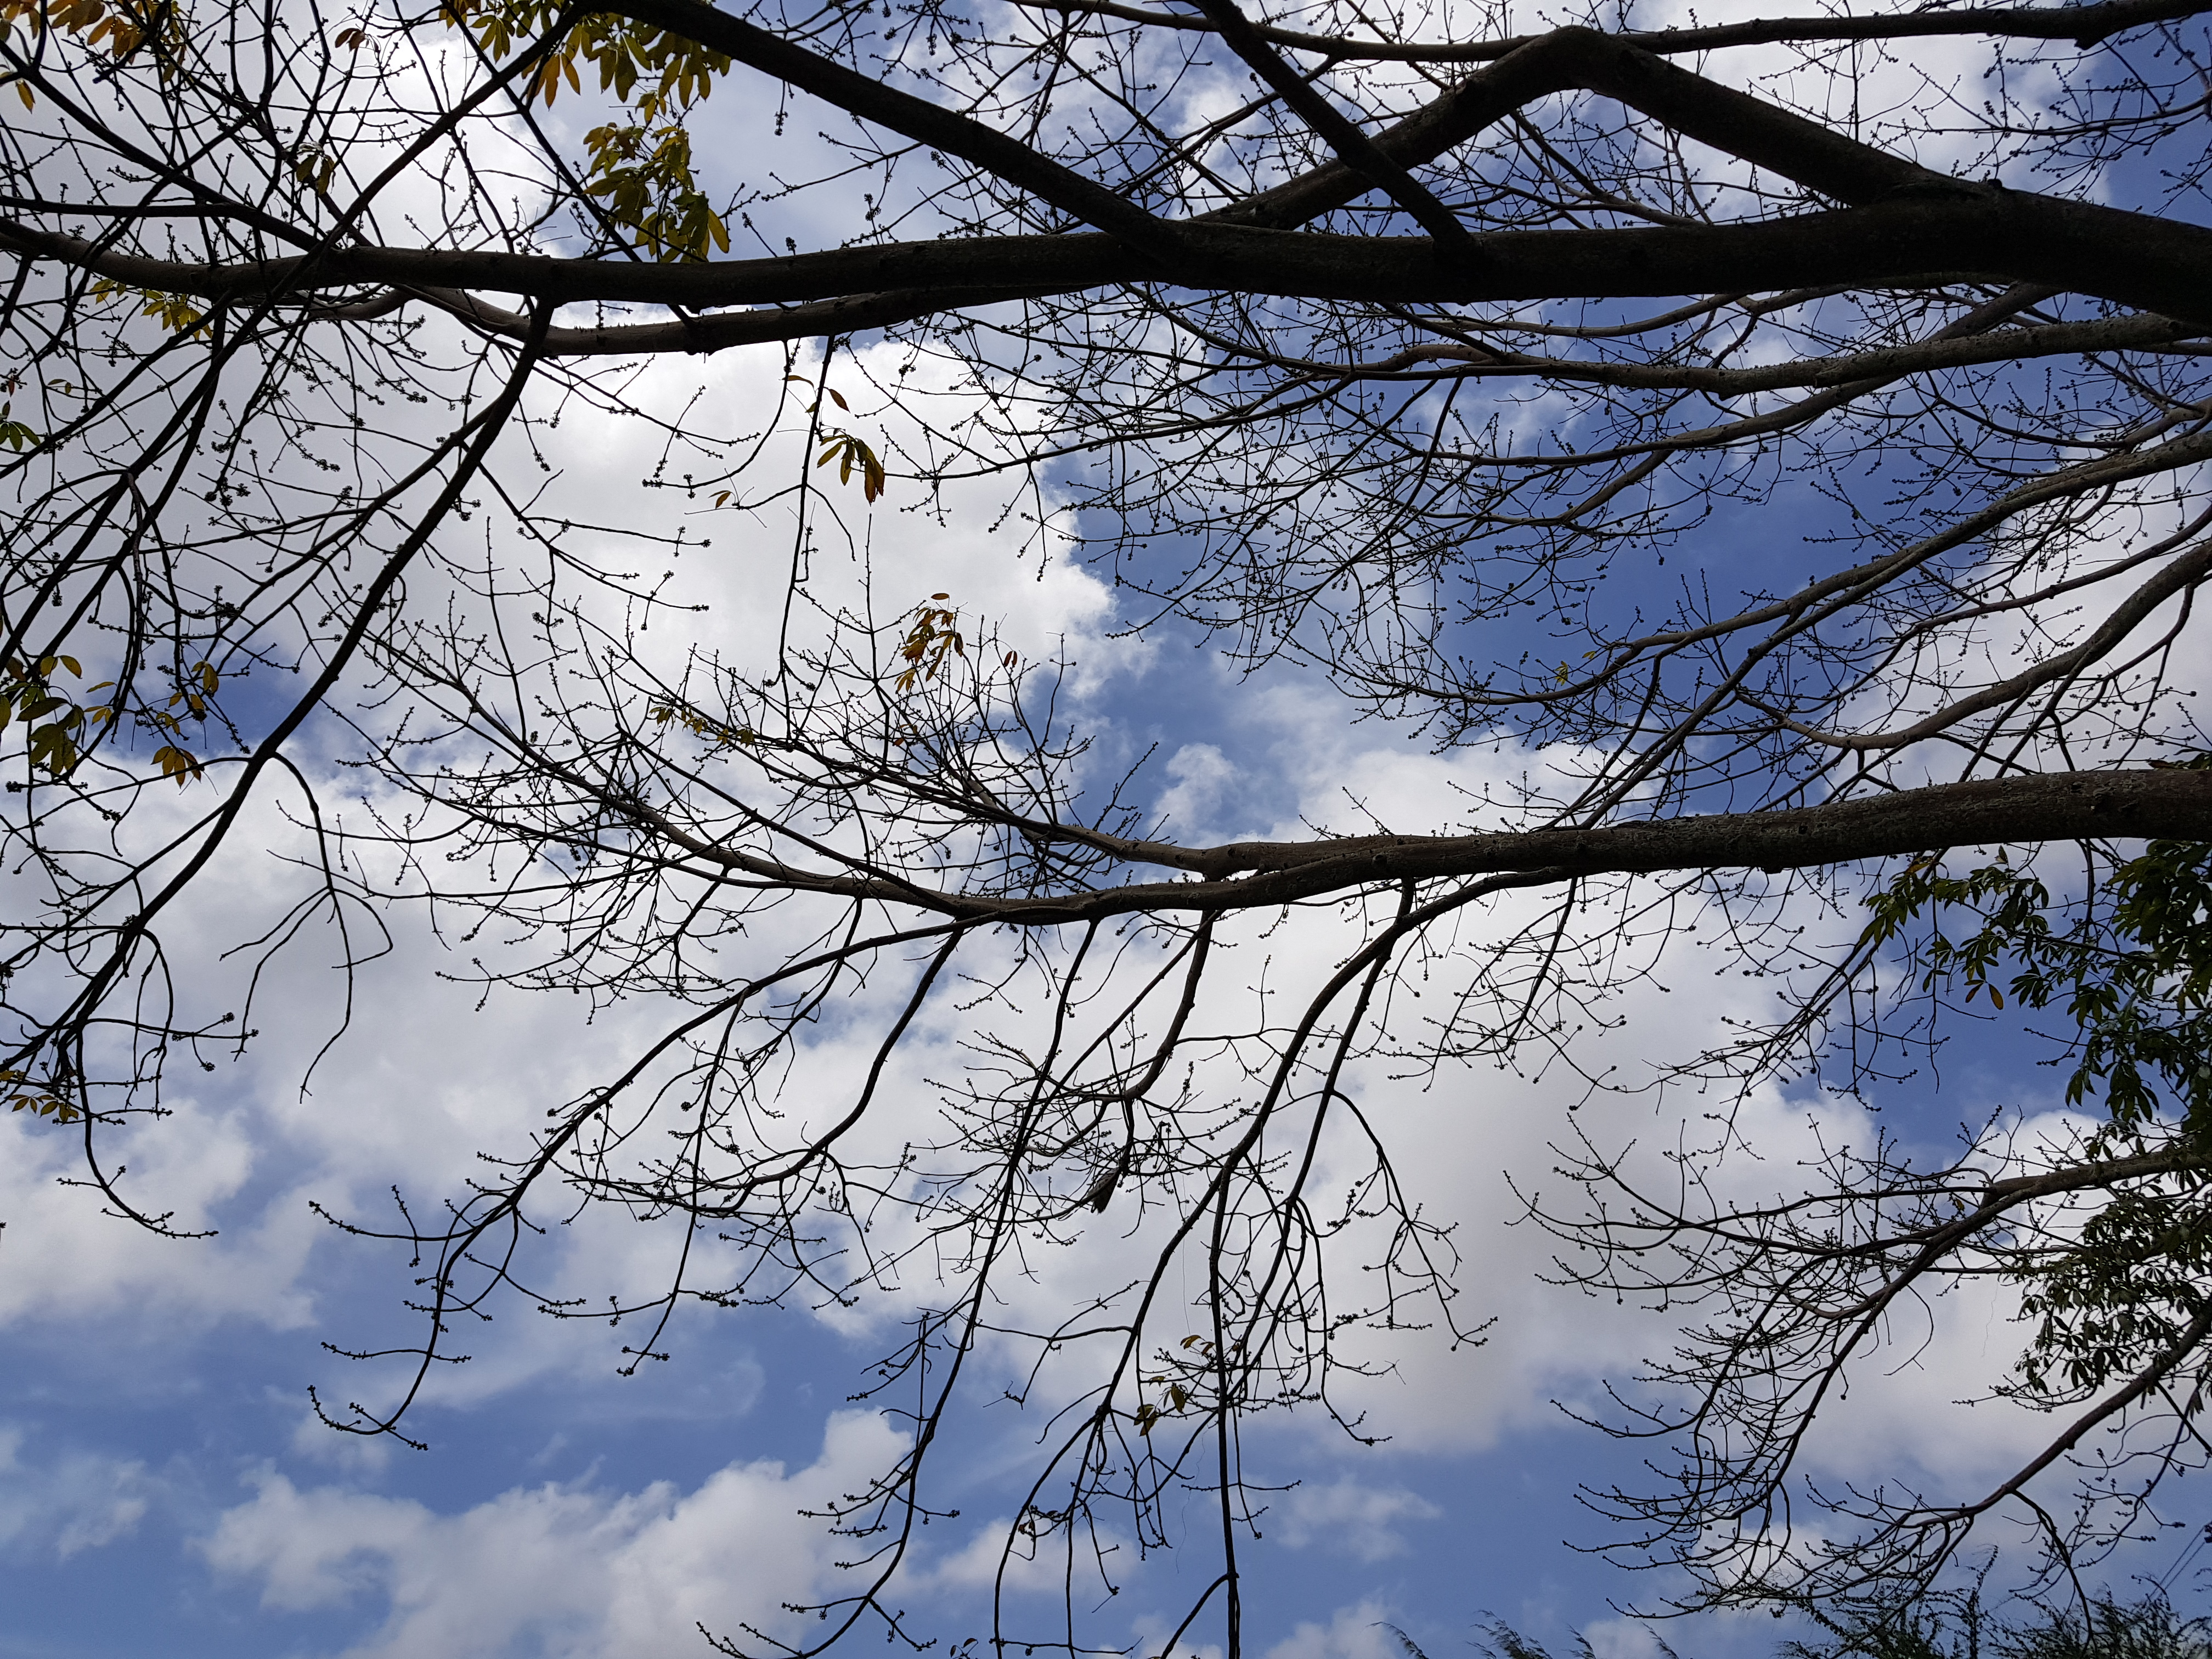 Barrenness – Fall of the Cotton Tree Leaves in March